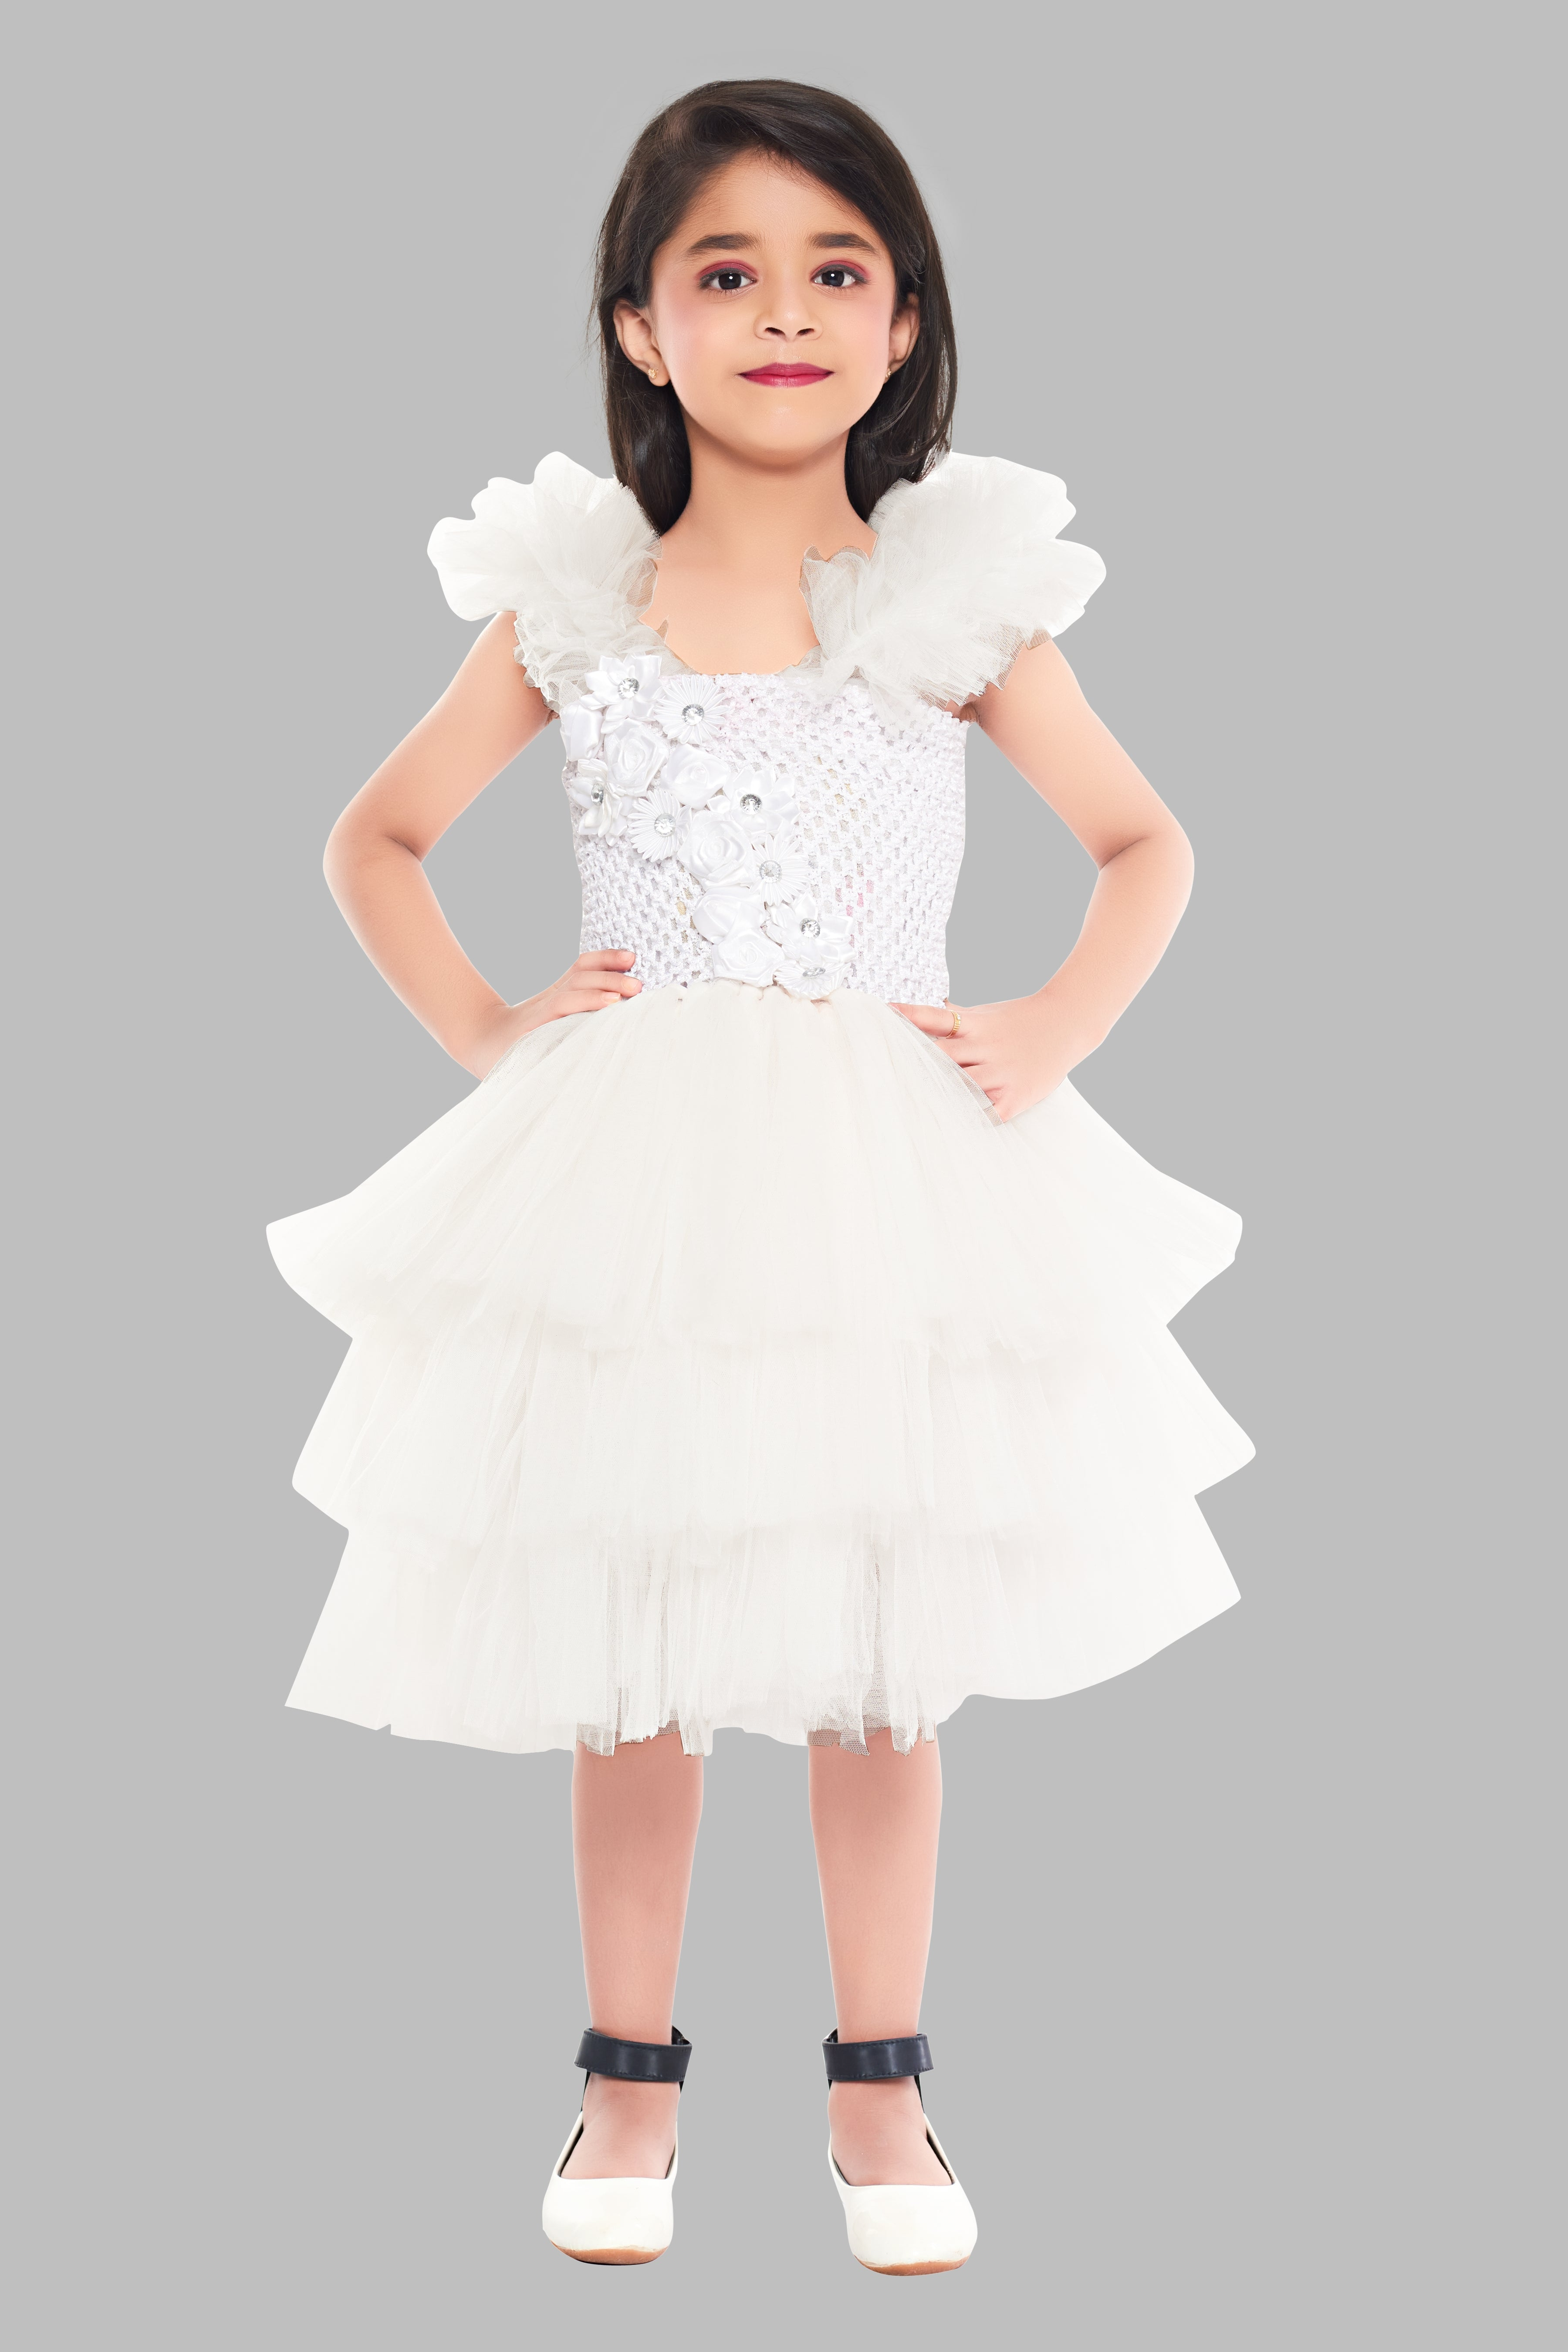 Christmas White Layered Tutu Dress